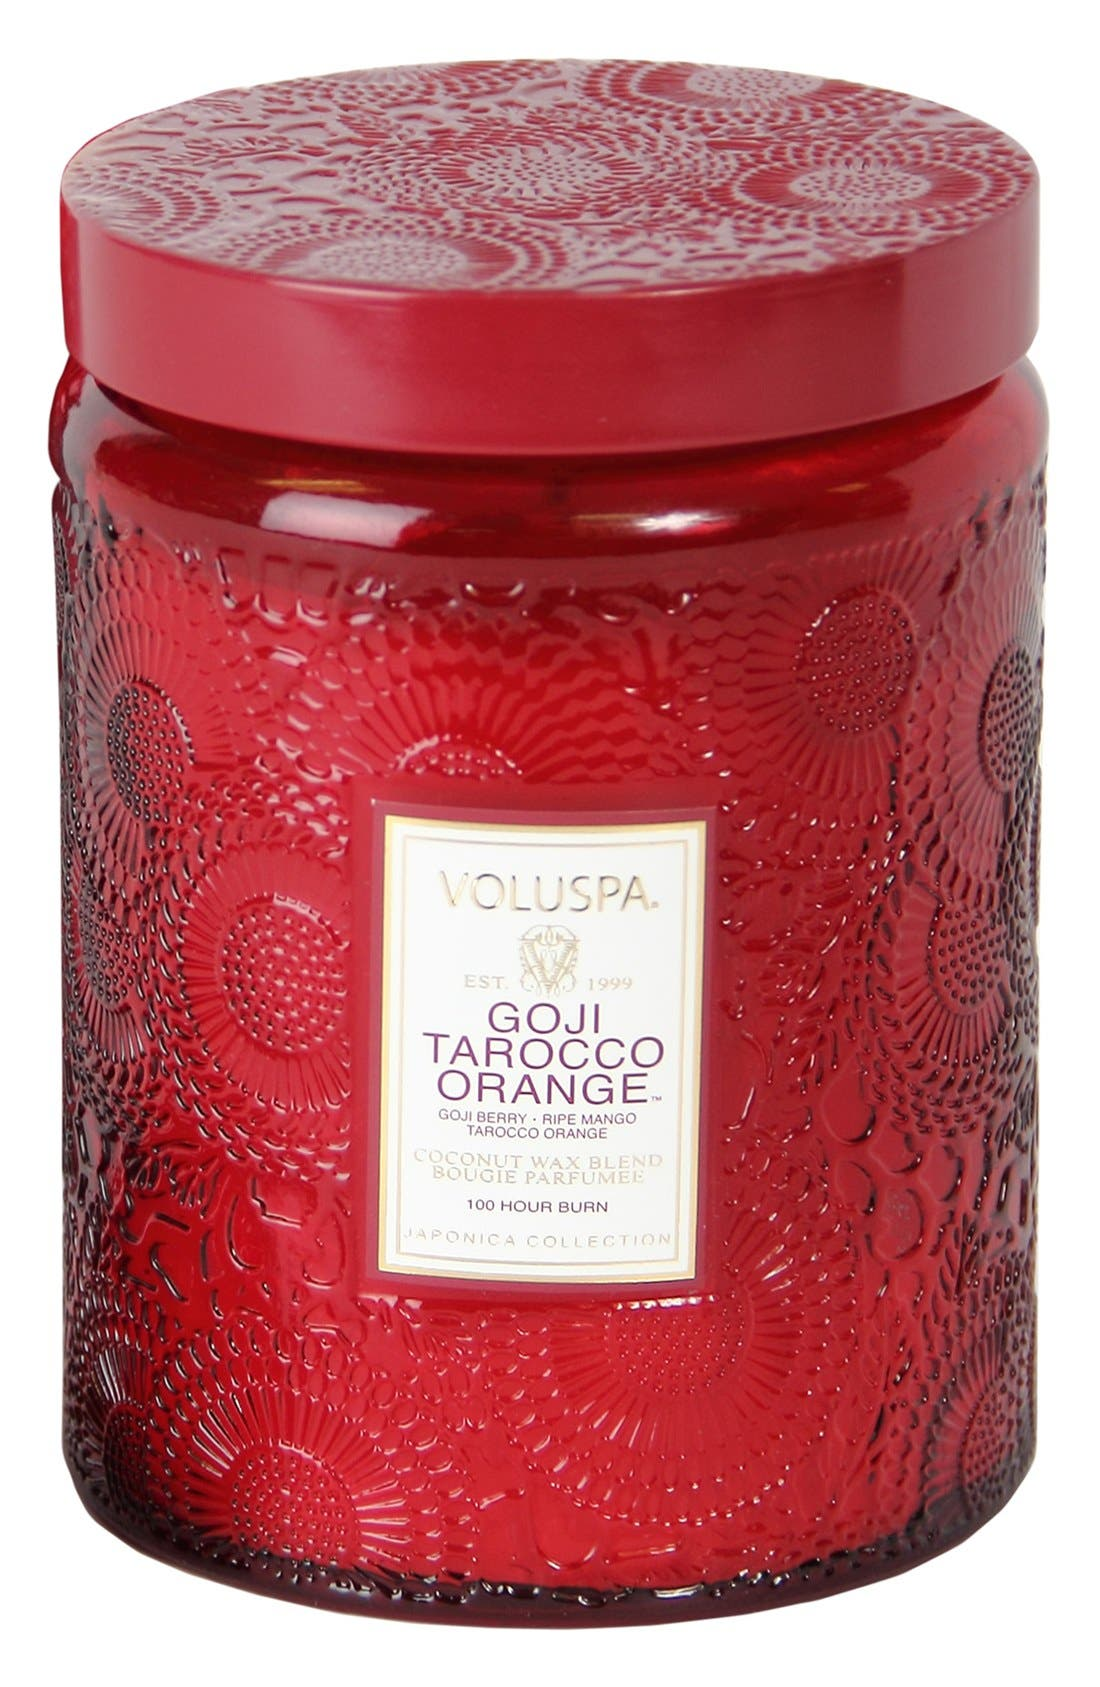 'Japonica - Goji Tarocco Orange' Large Embossed Jar Candle,                             Main thumbnail 1, color,                             000